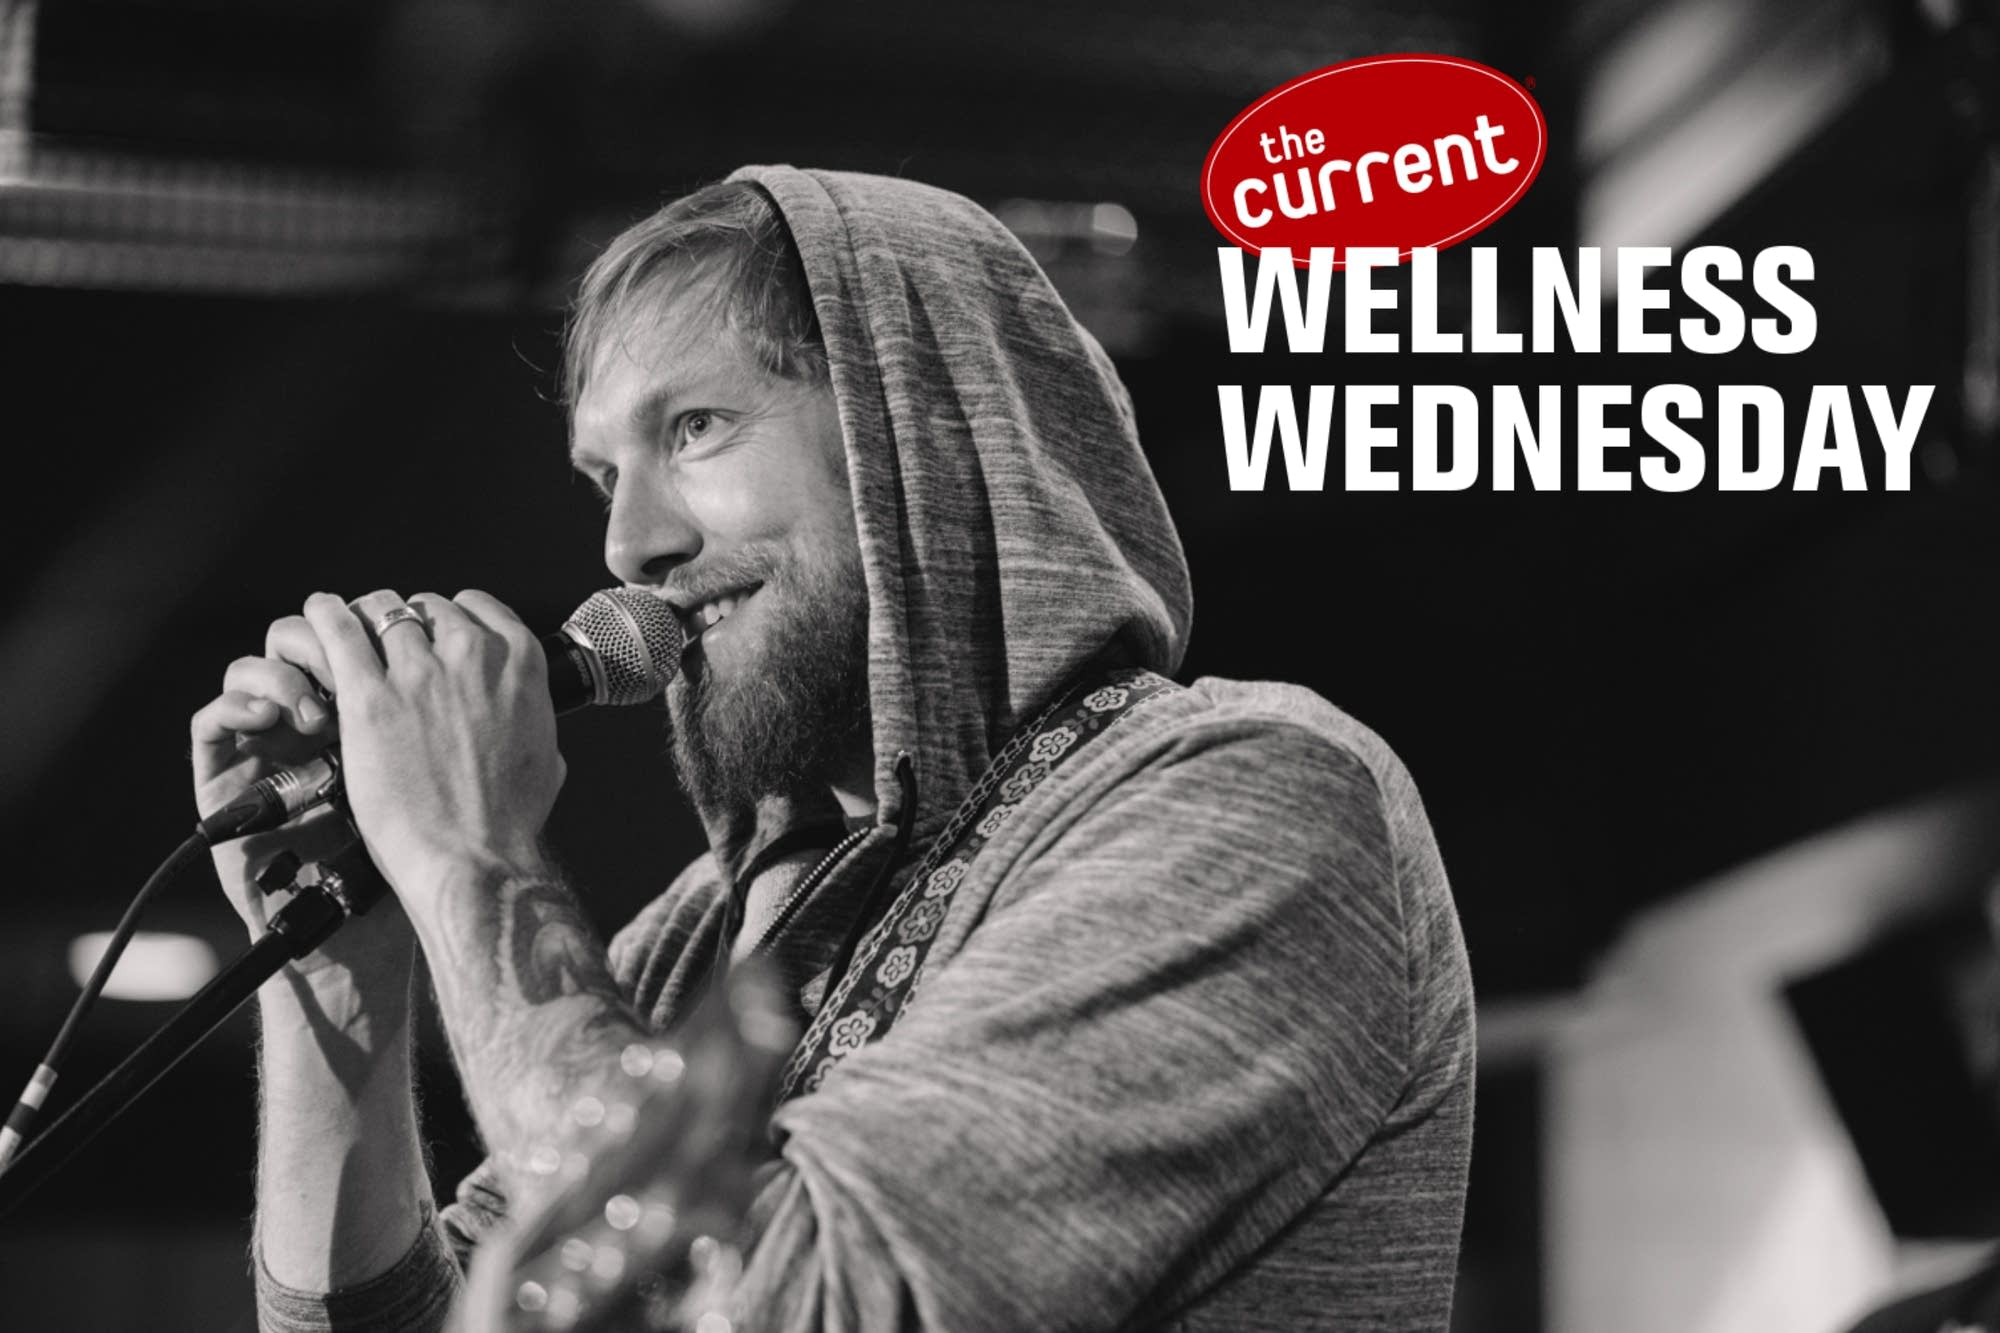 Man speaking into microphone with Wellness Wednesday logo.